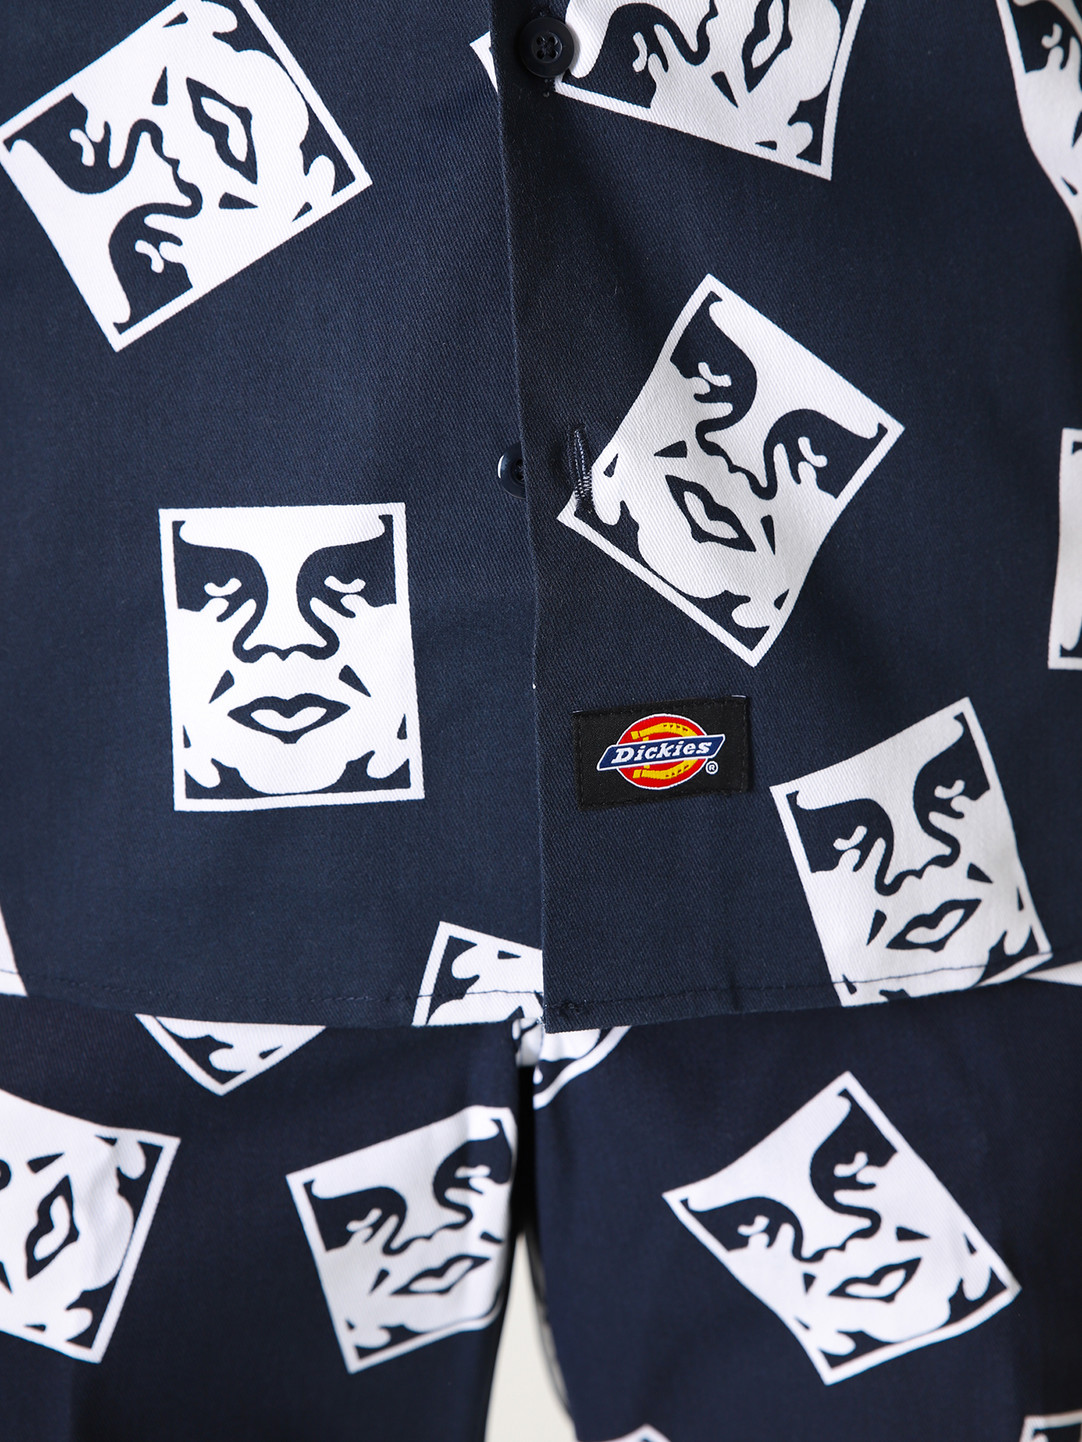 Obey Obey x Dickies WS576 Work Shirt Dark Navy 181210300DNV